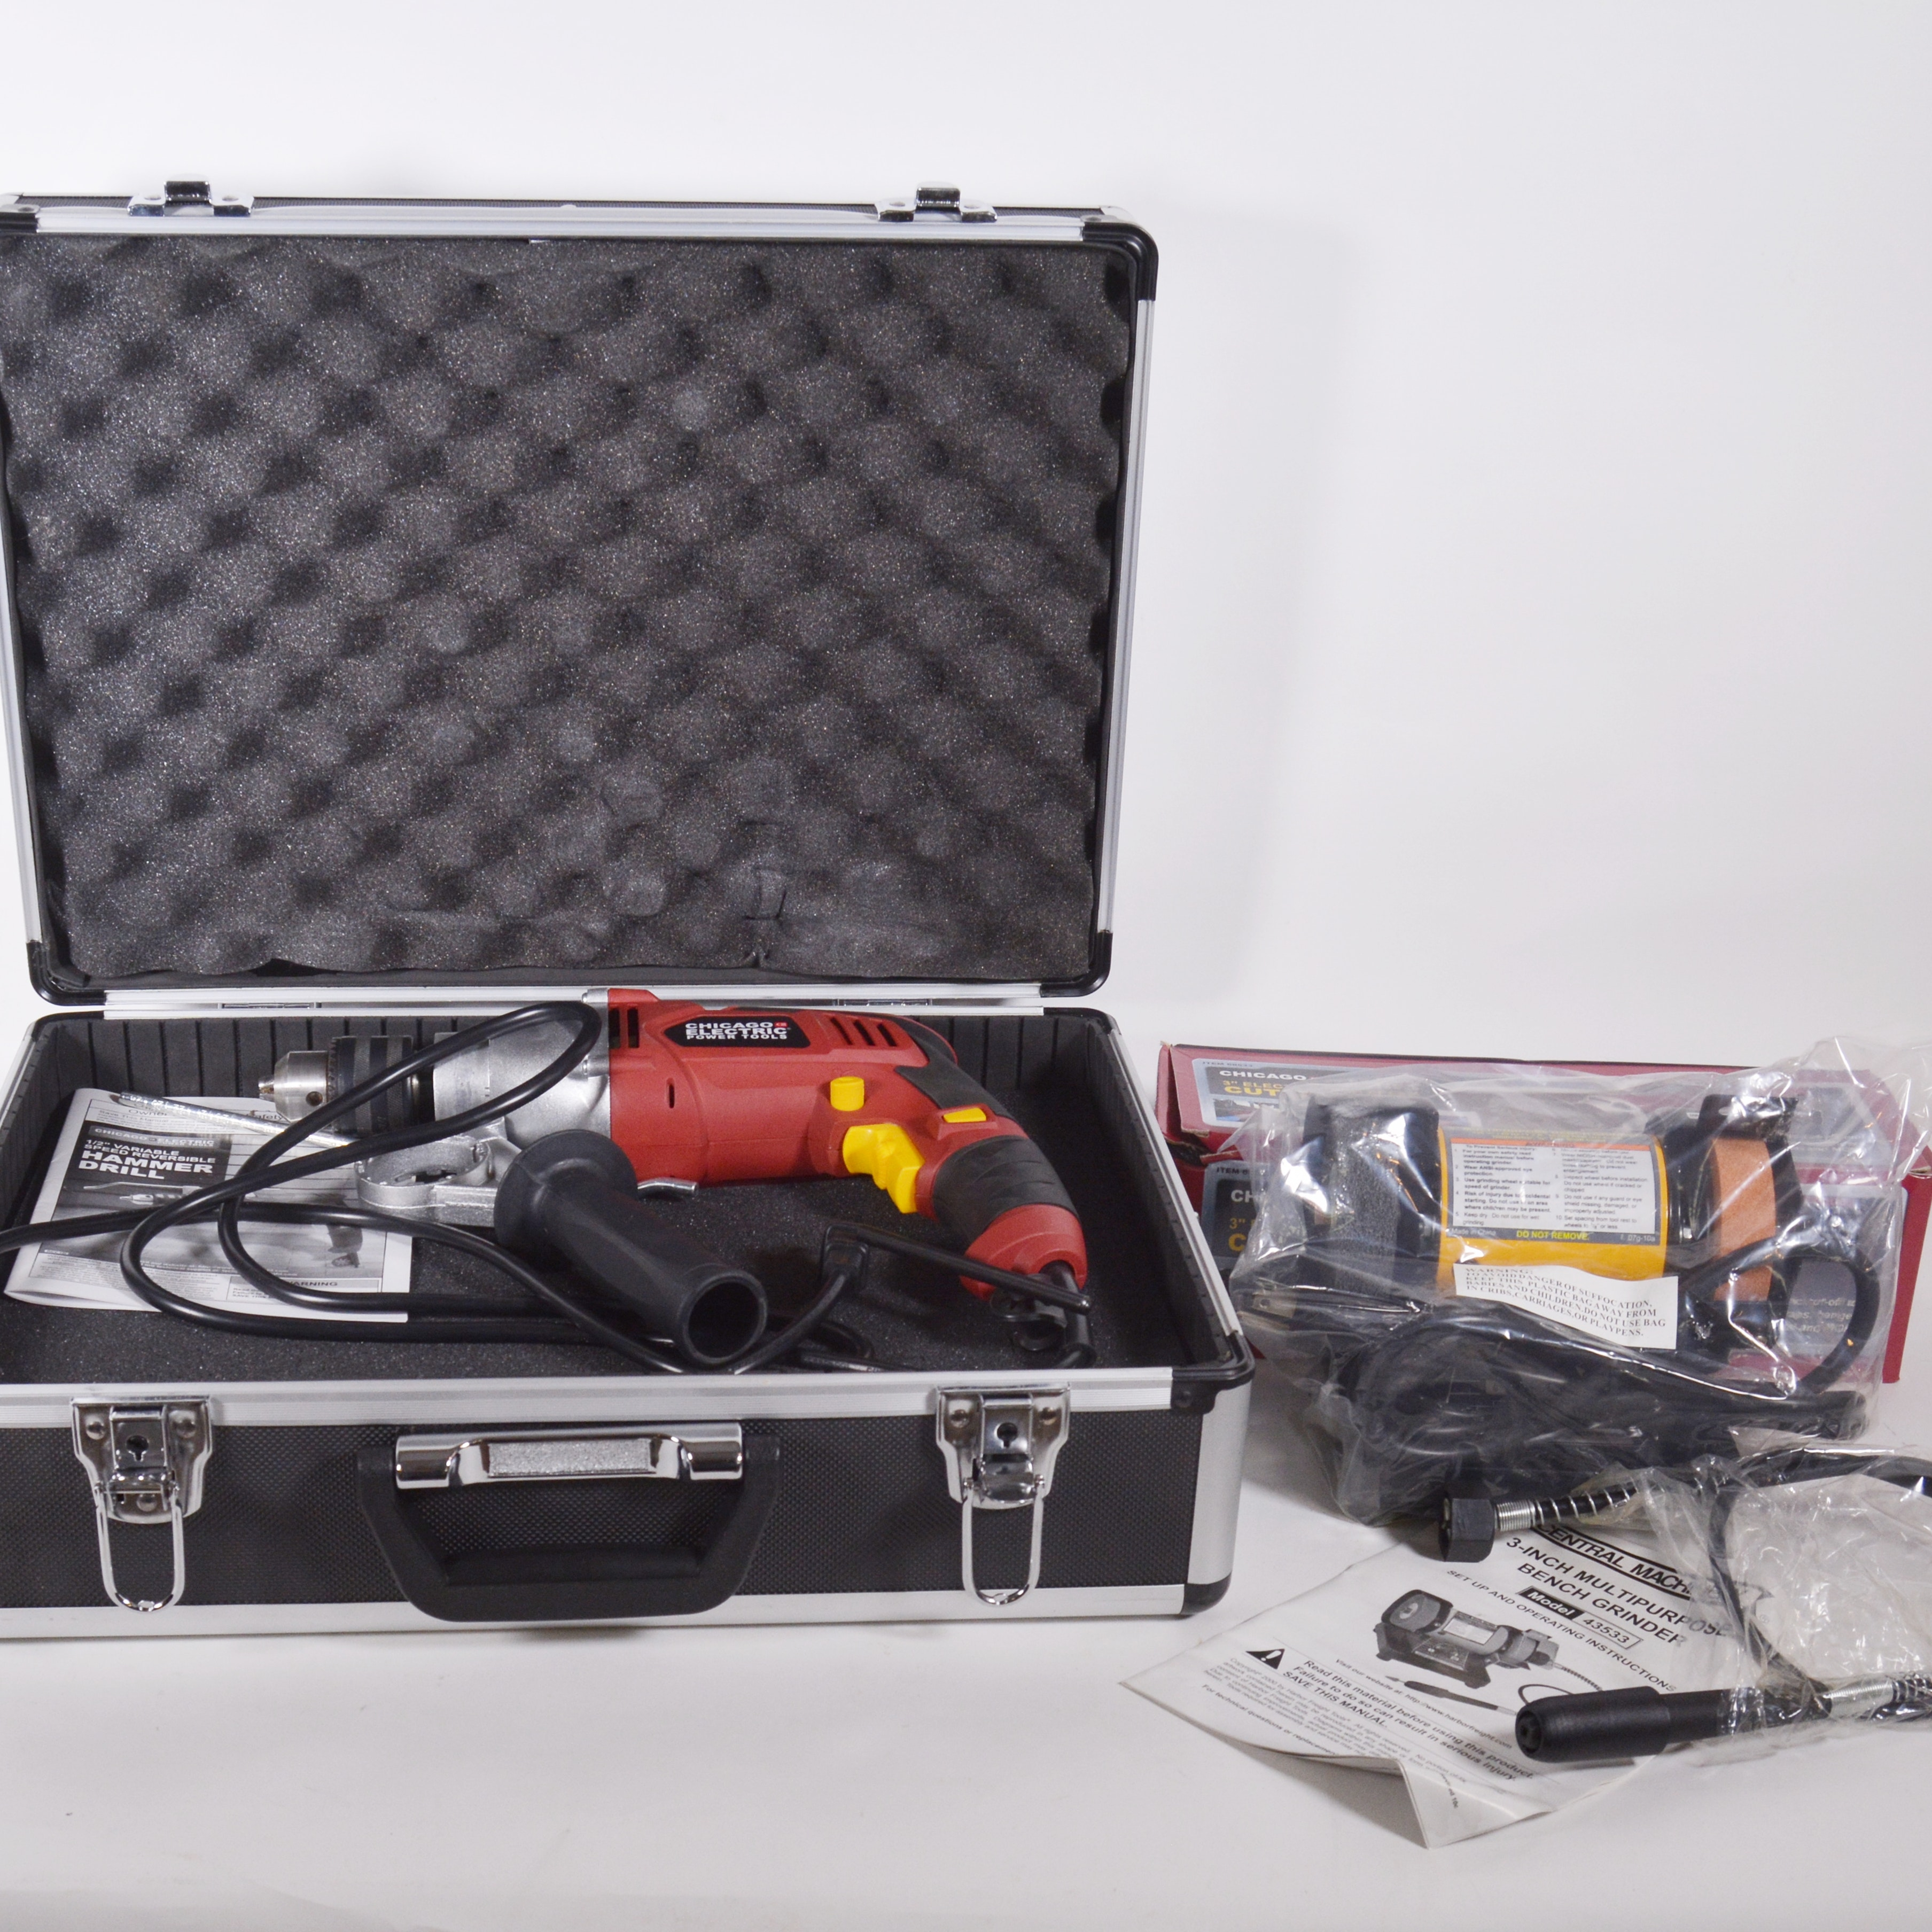 Chicago Electric Hammer Drill in Case and Other Bench Grinder